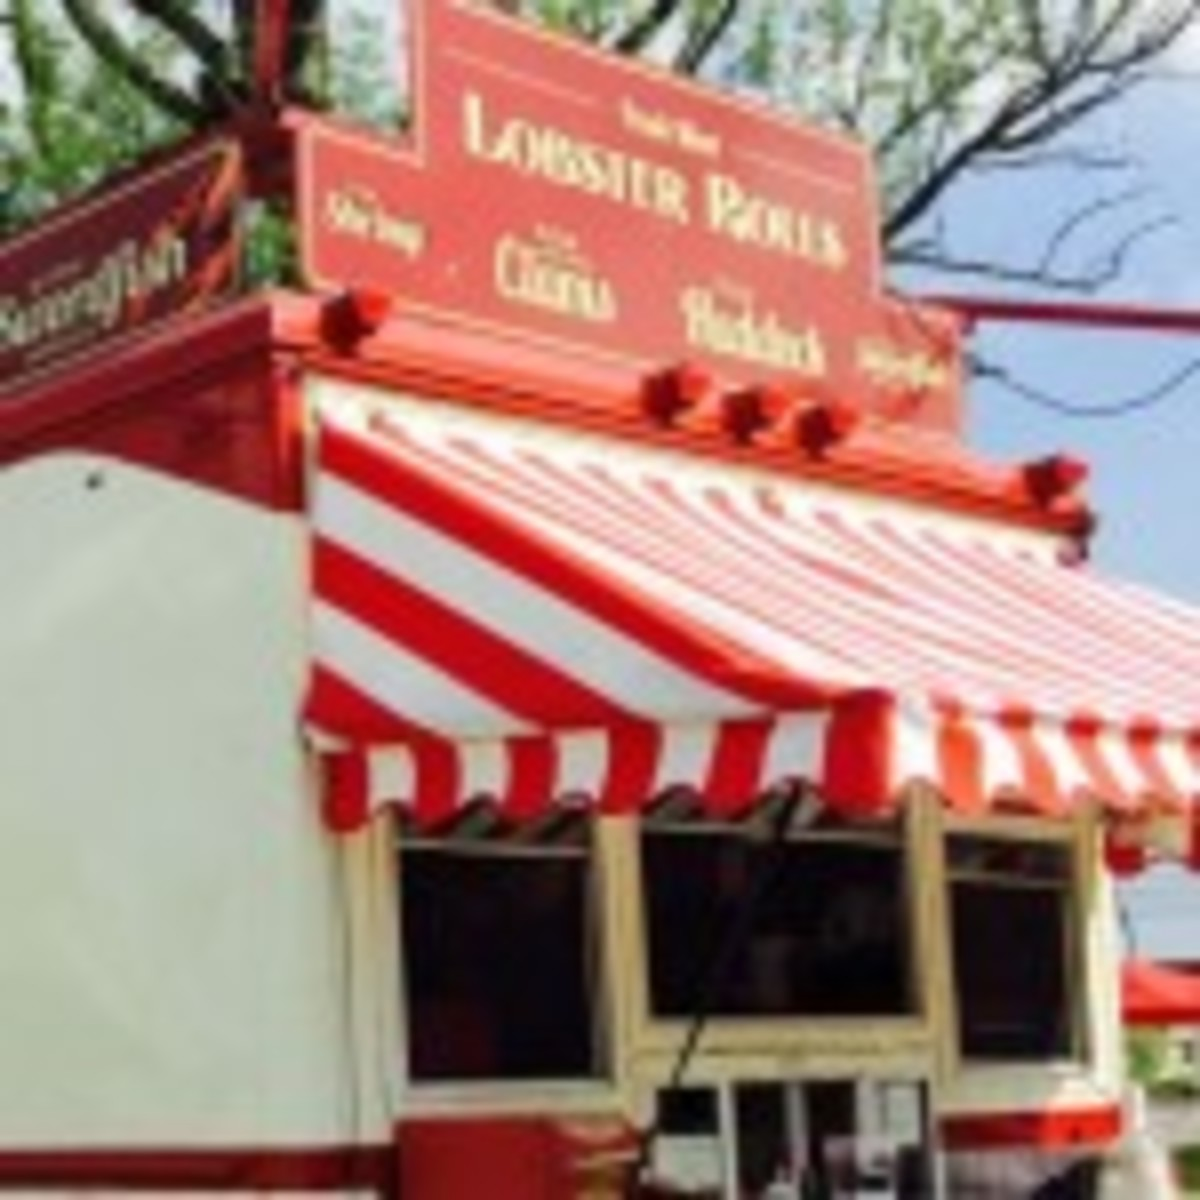 Lobster Roll stand